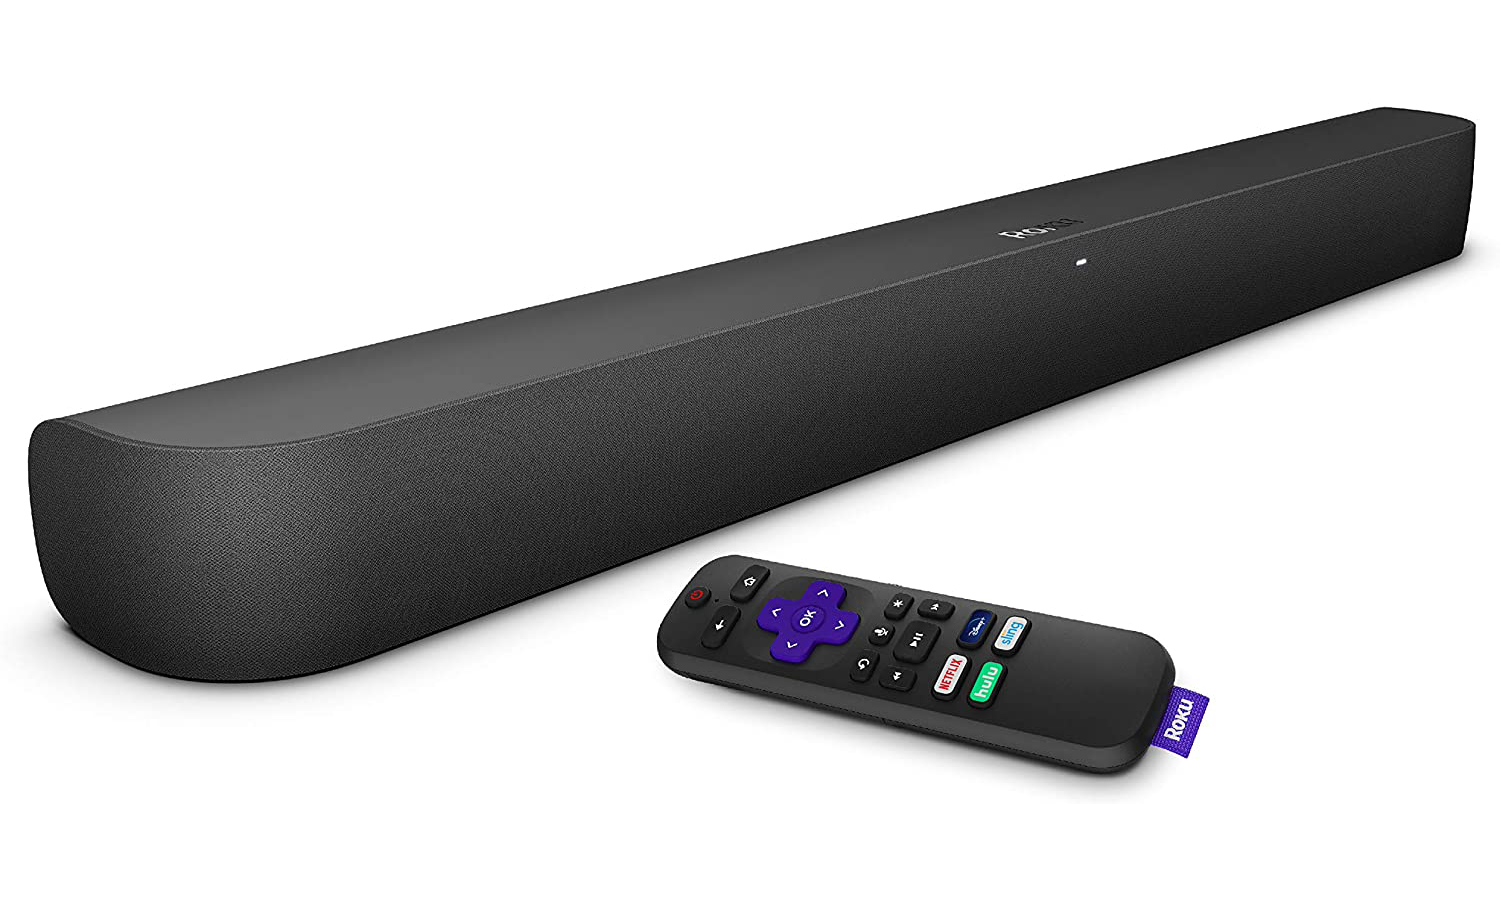 Tech-Gift-Guide-Roku-Remote-and-Soundbar-on-White-Background.jpg